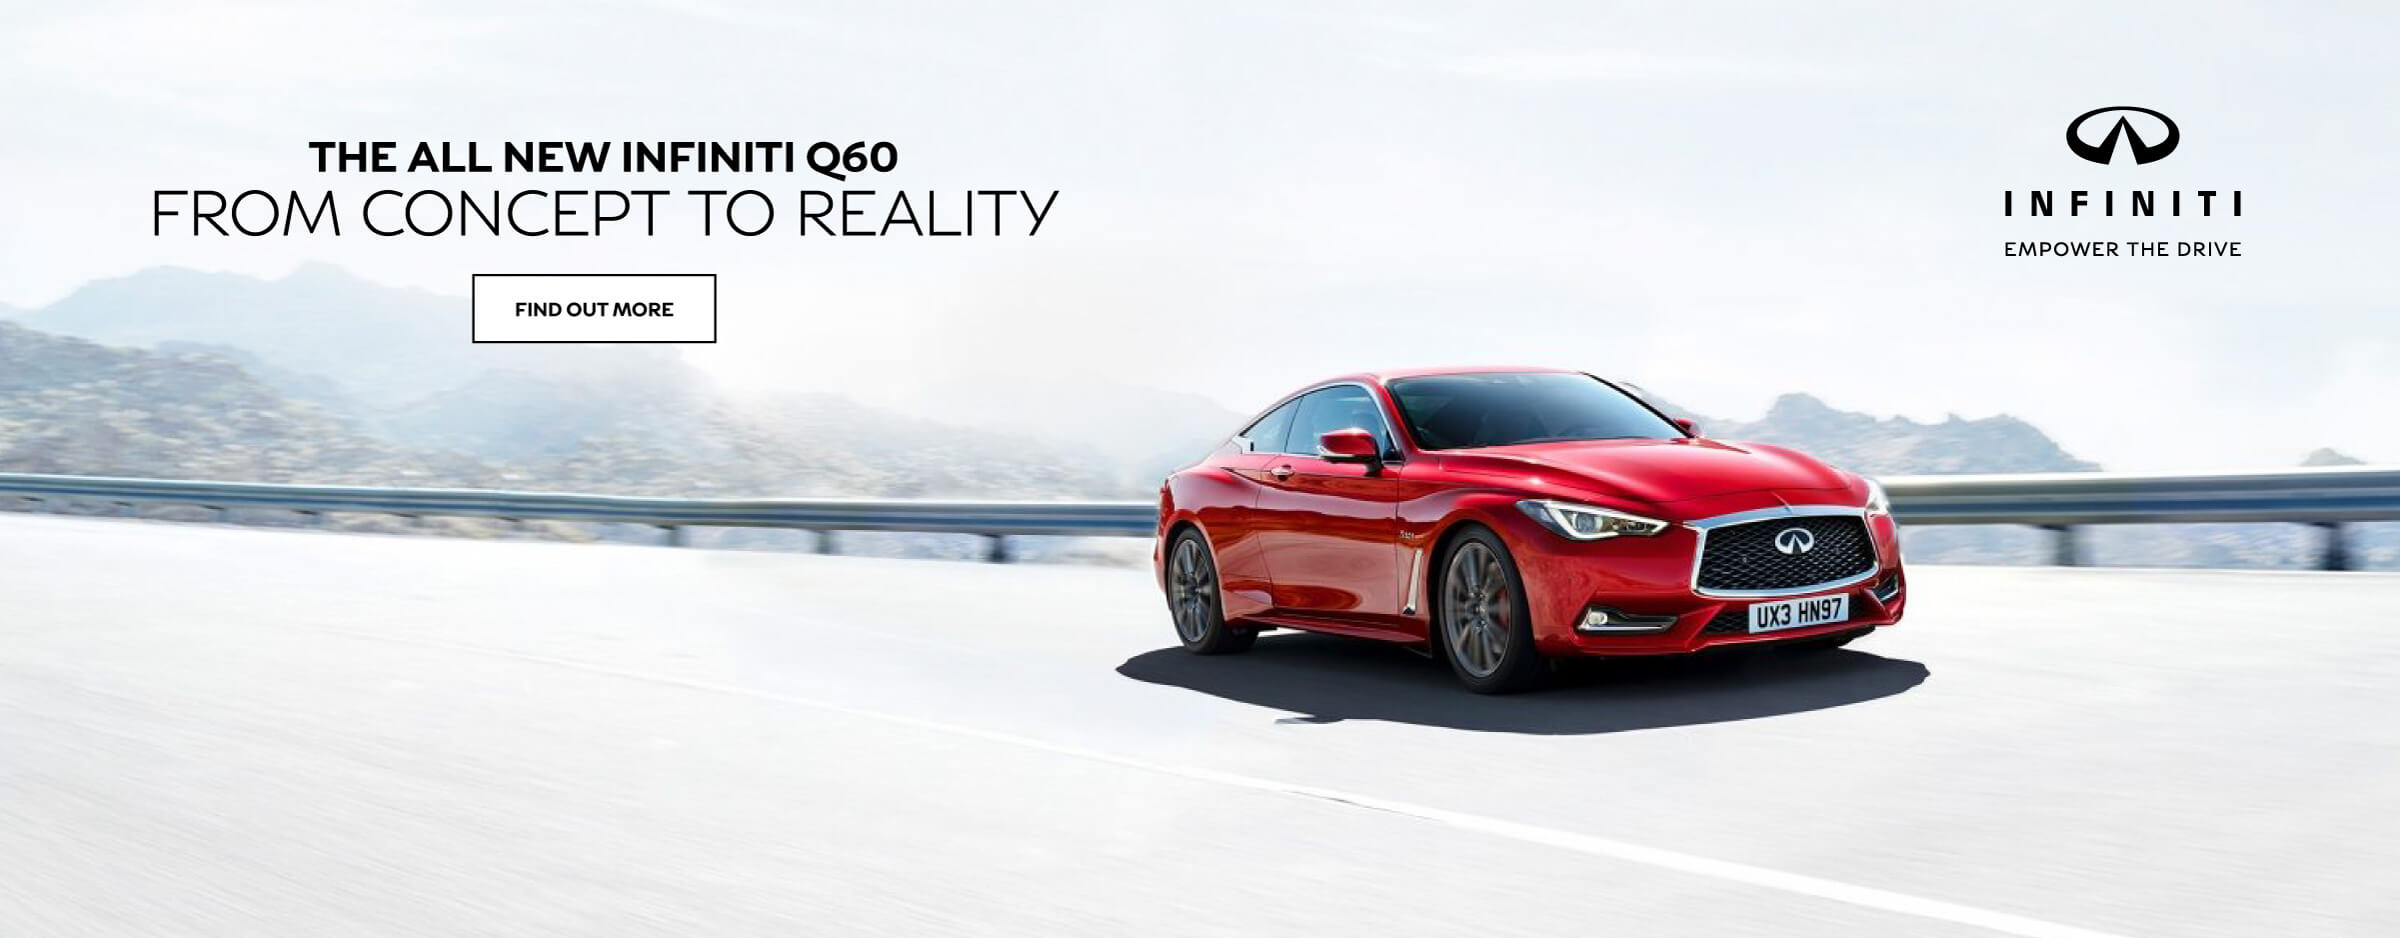 Infiniti Q60 Concept To Reality BB